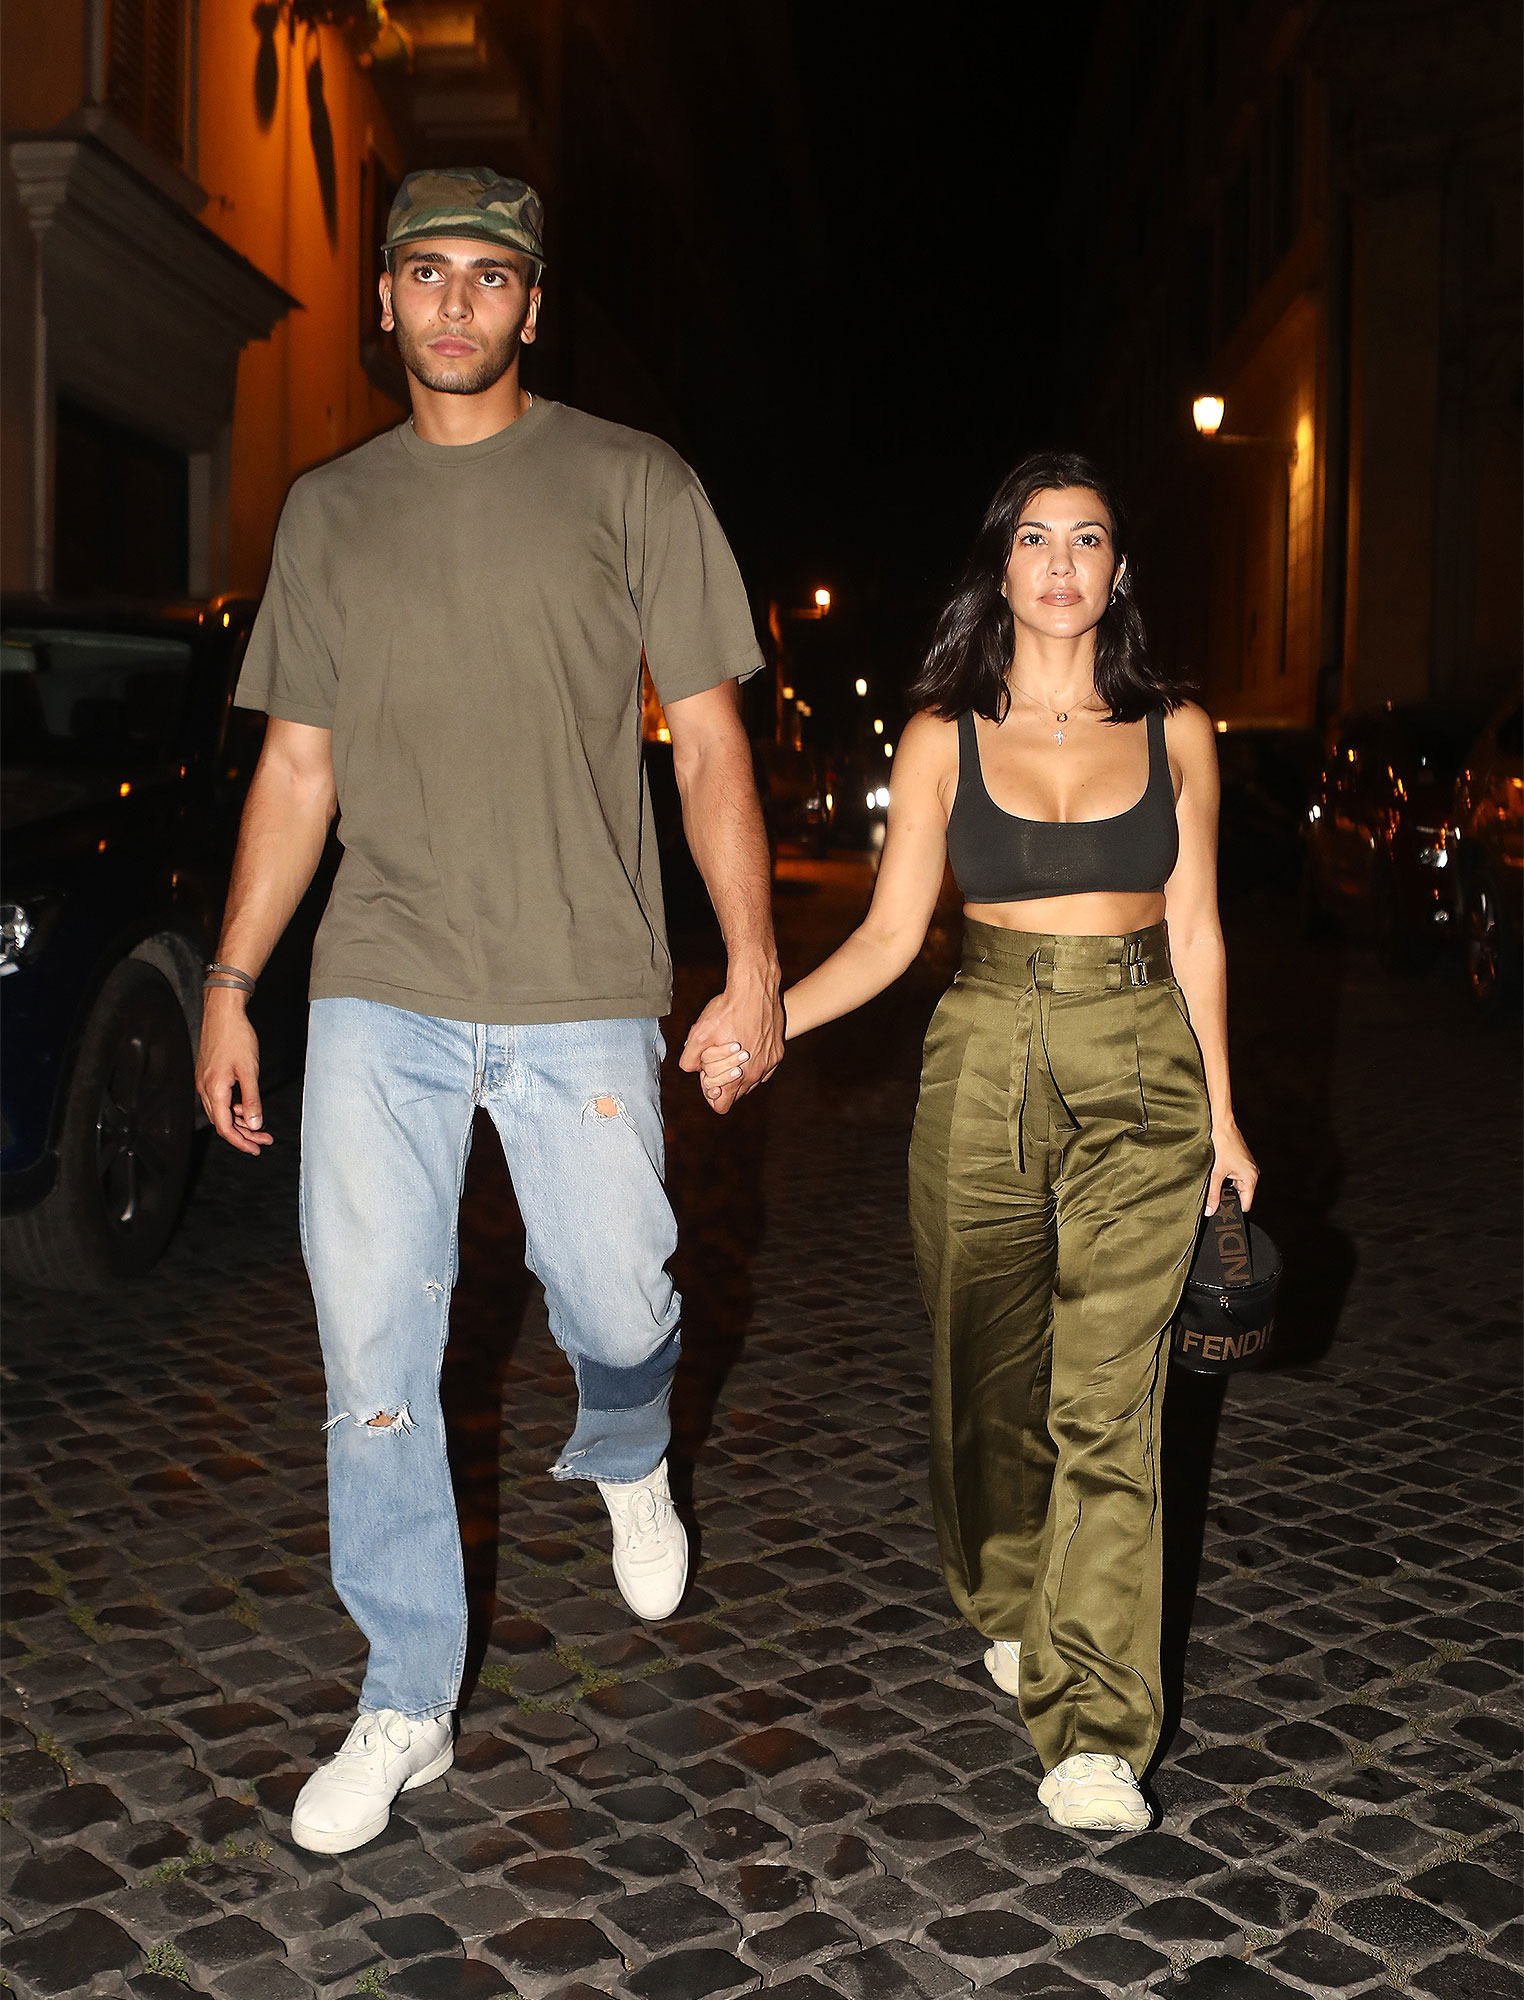 Kourtney Kardashian and Boyfriend Younes Bendjima are Spotted Having a Romantic Dinner in Rome, Italy.